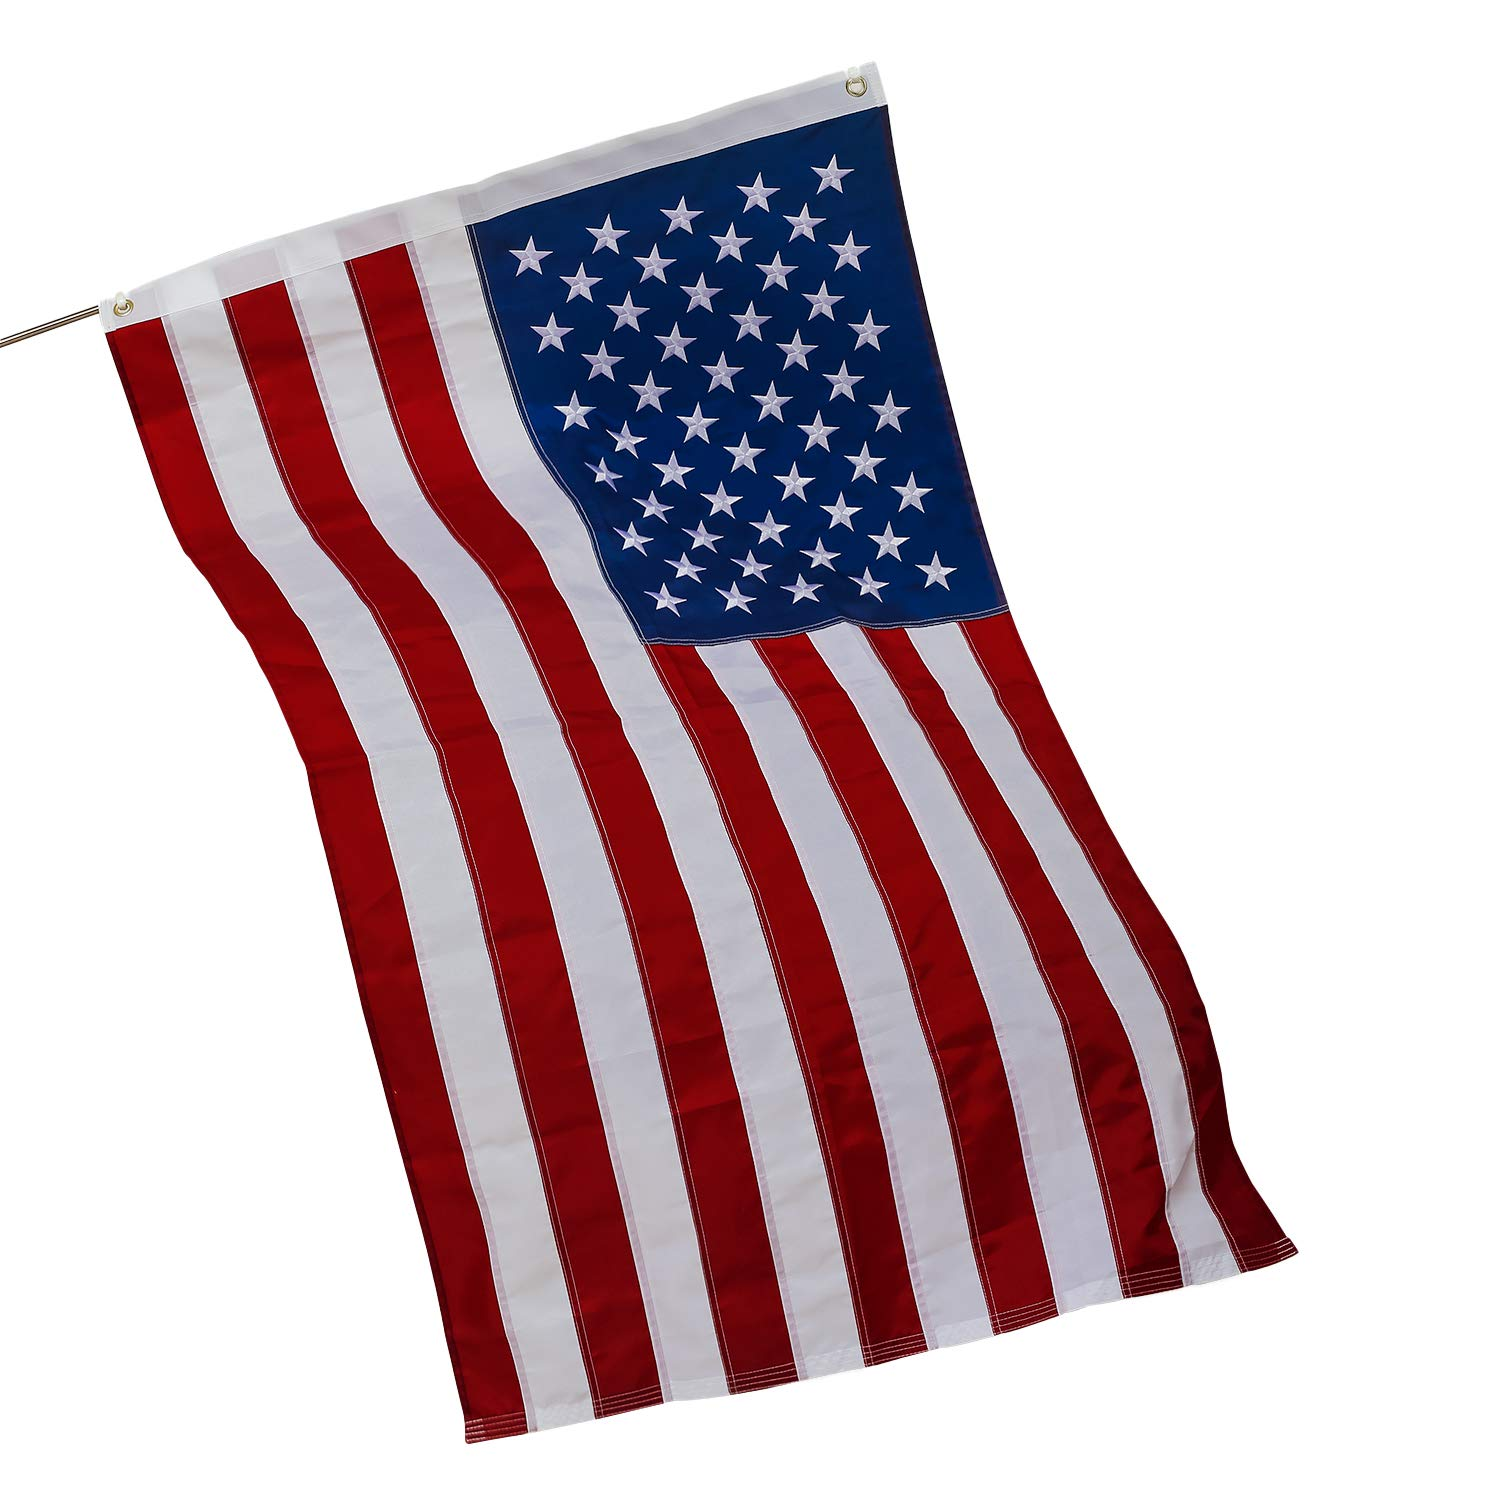 Fan Desen.American Flag 3x5 Ft,Waterproof USA Flag,Deluxe Embroidered Stars,Sewn Stripes and Brass Grommets,Heavy-duty US Flag For Indoor And Outdoor Use